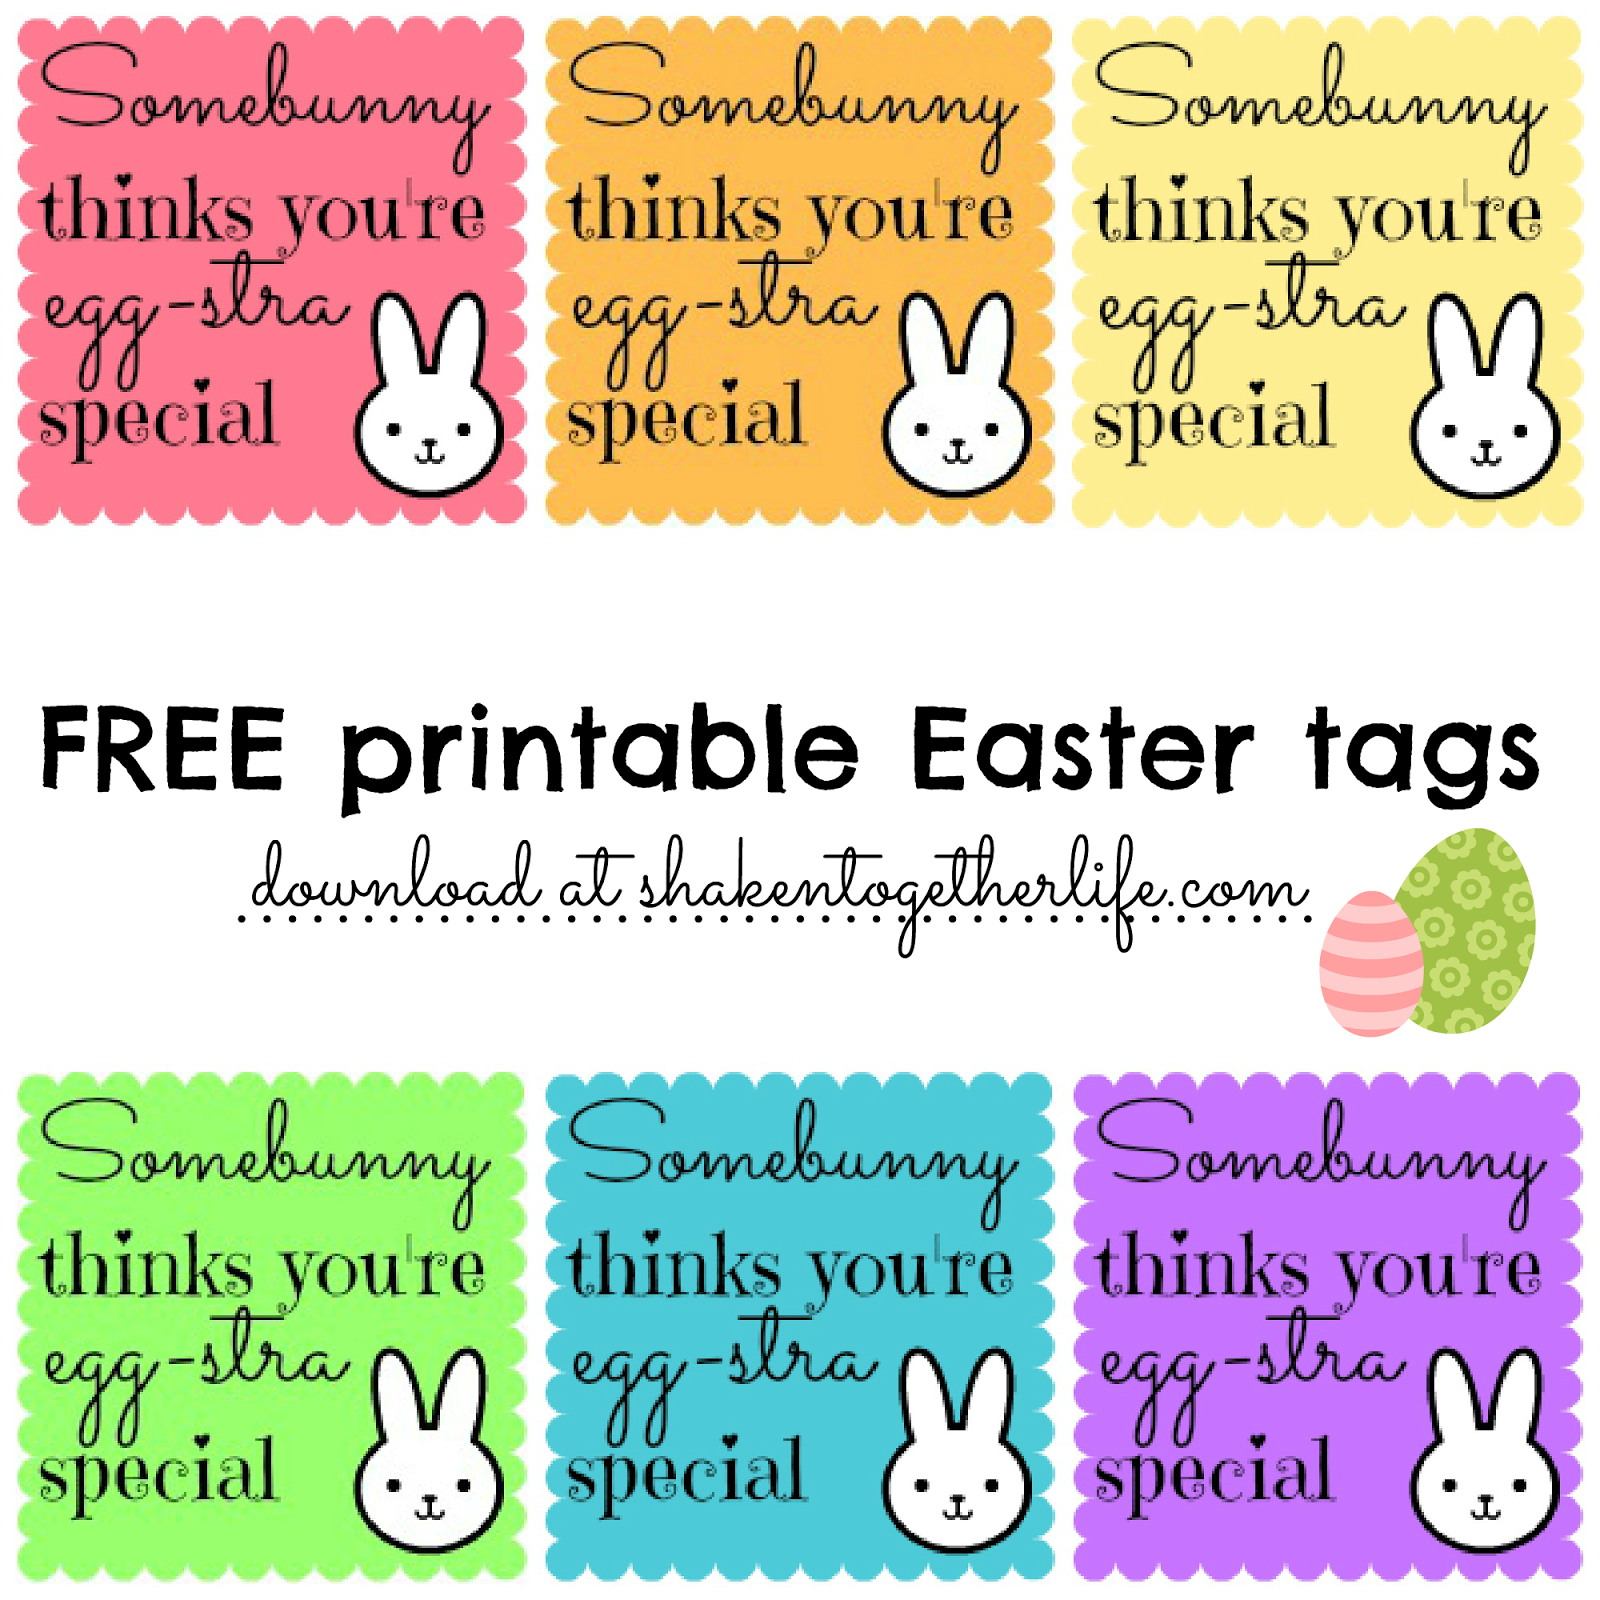 Free Printable Easter Gift Tags – Hd Easter Images - Free Printable Easter Tags